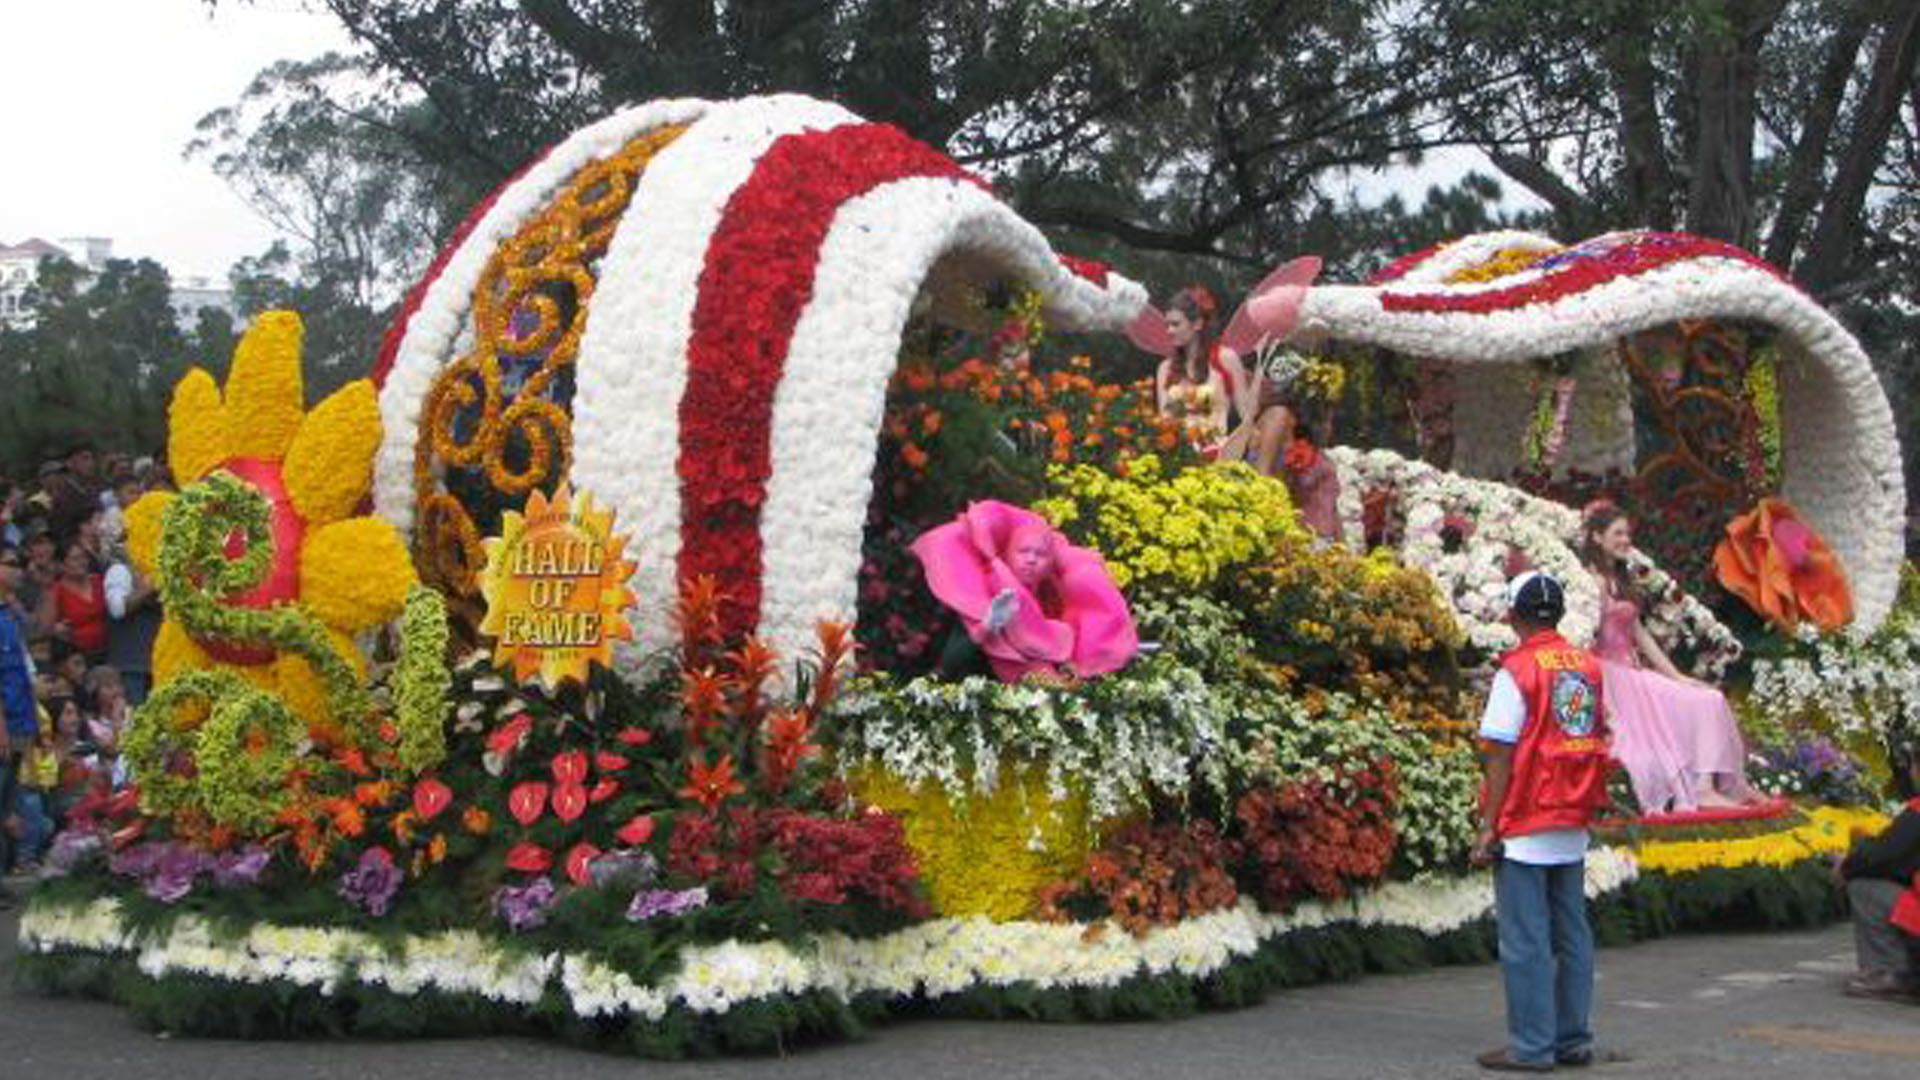 Best Of Flower Festival Baguio Schedule And Description In 2020 Flower Festival Tulips Flowers Festival